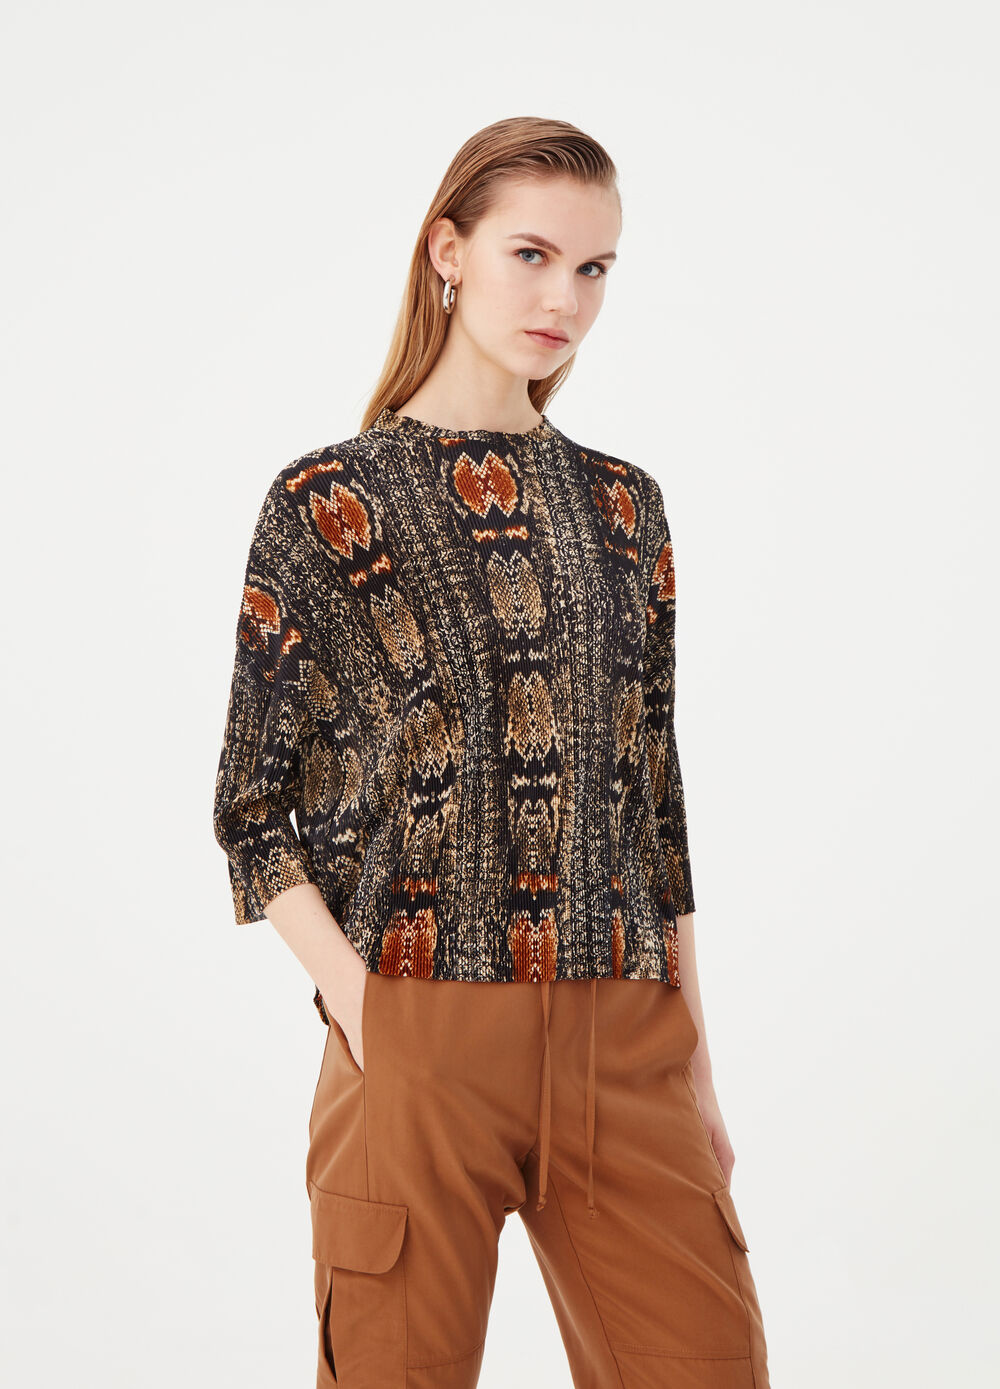 T-shirt with long sleeves and pattern